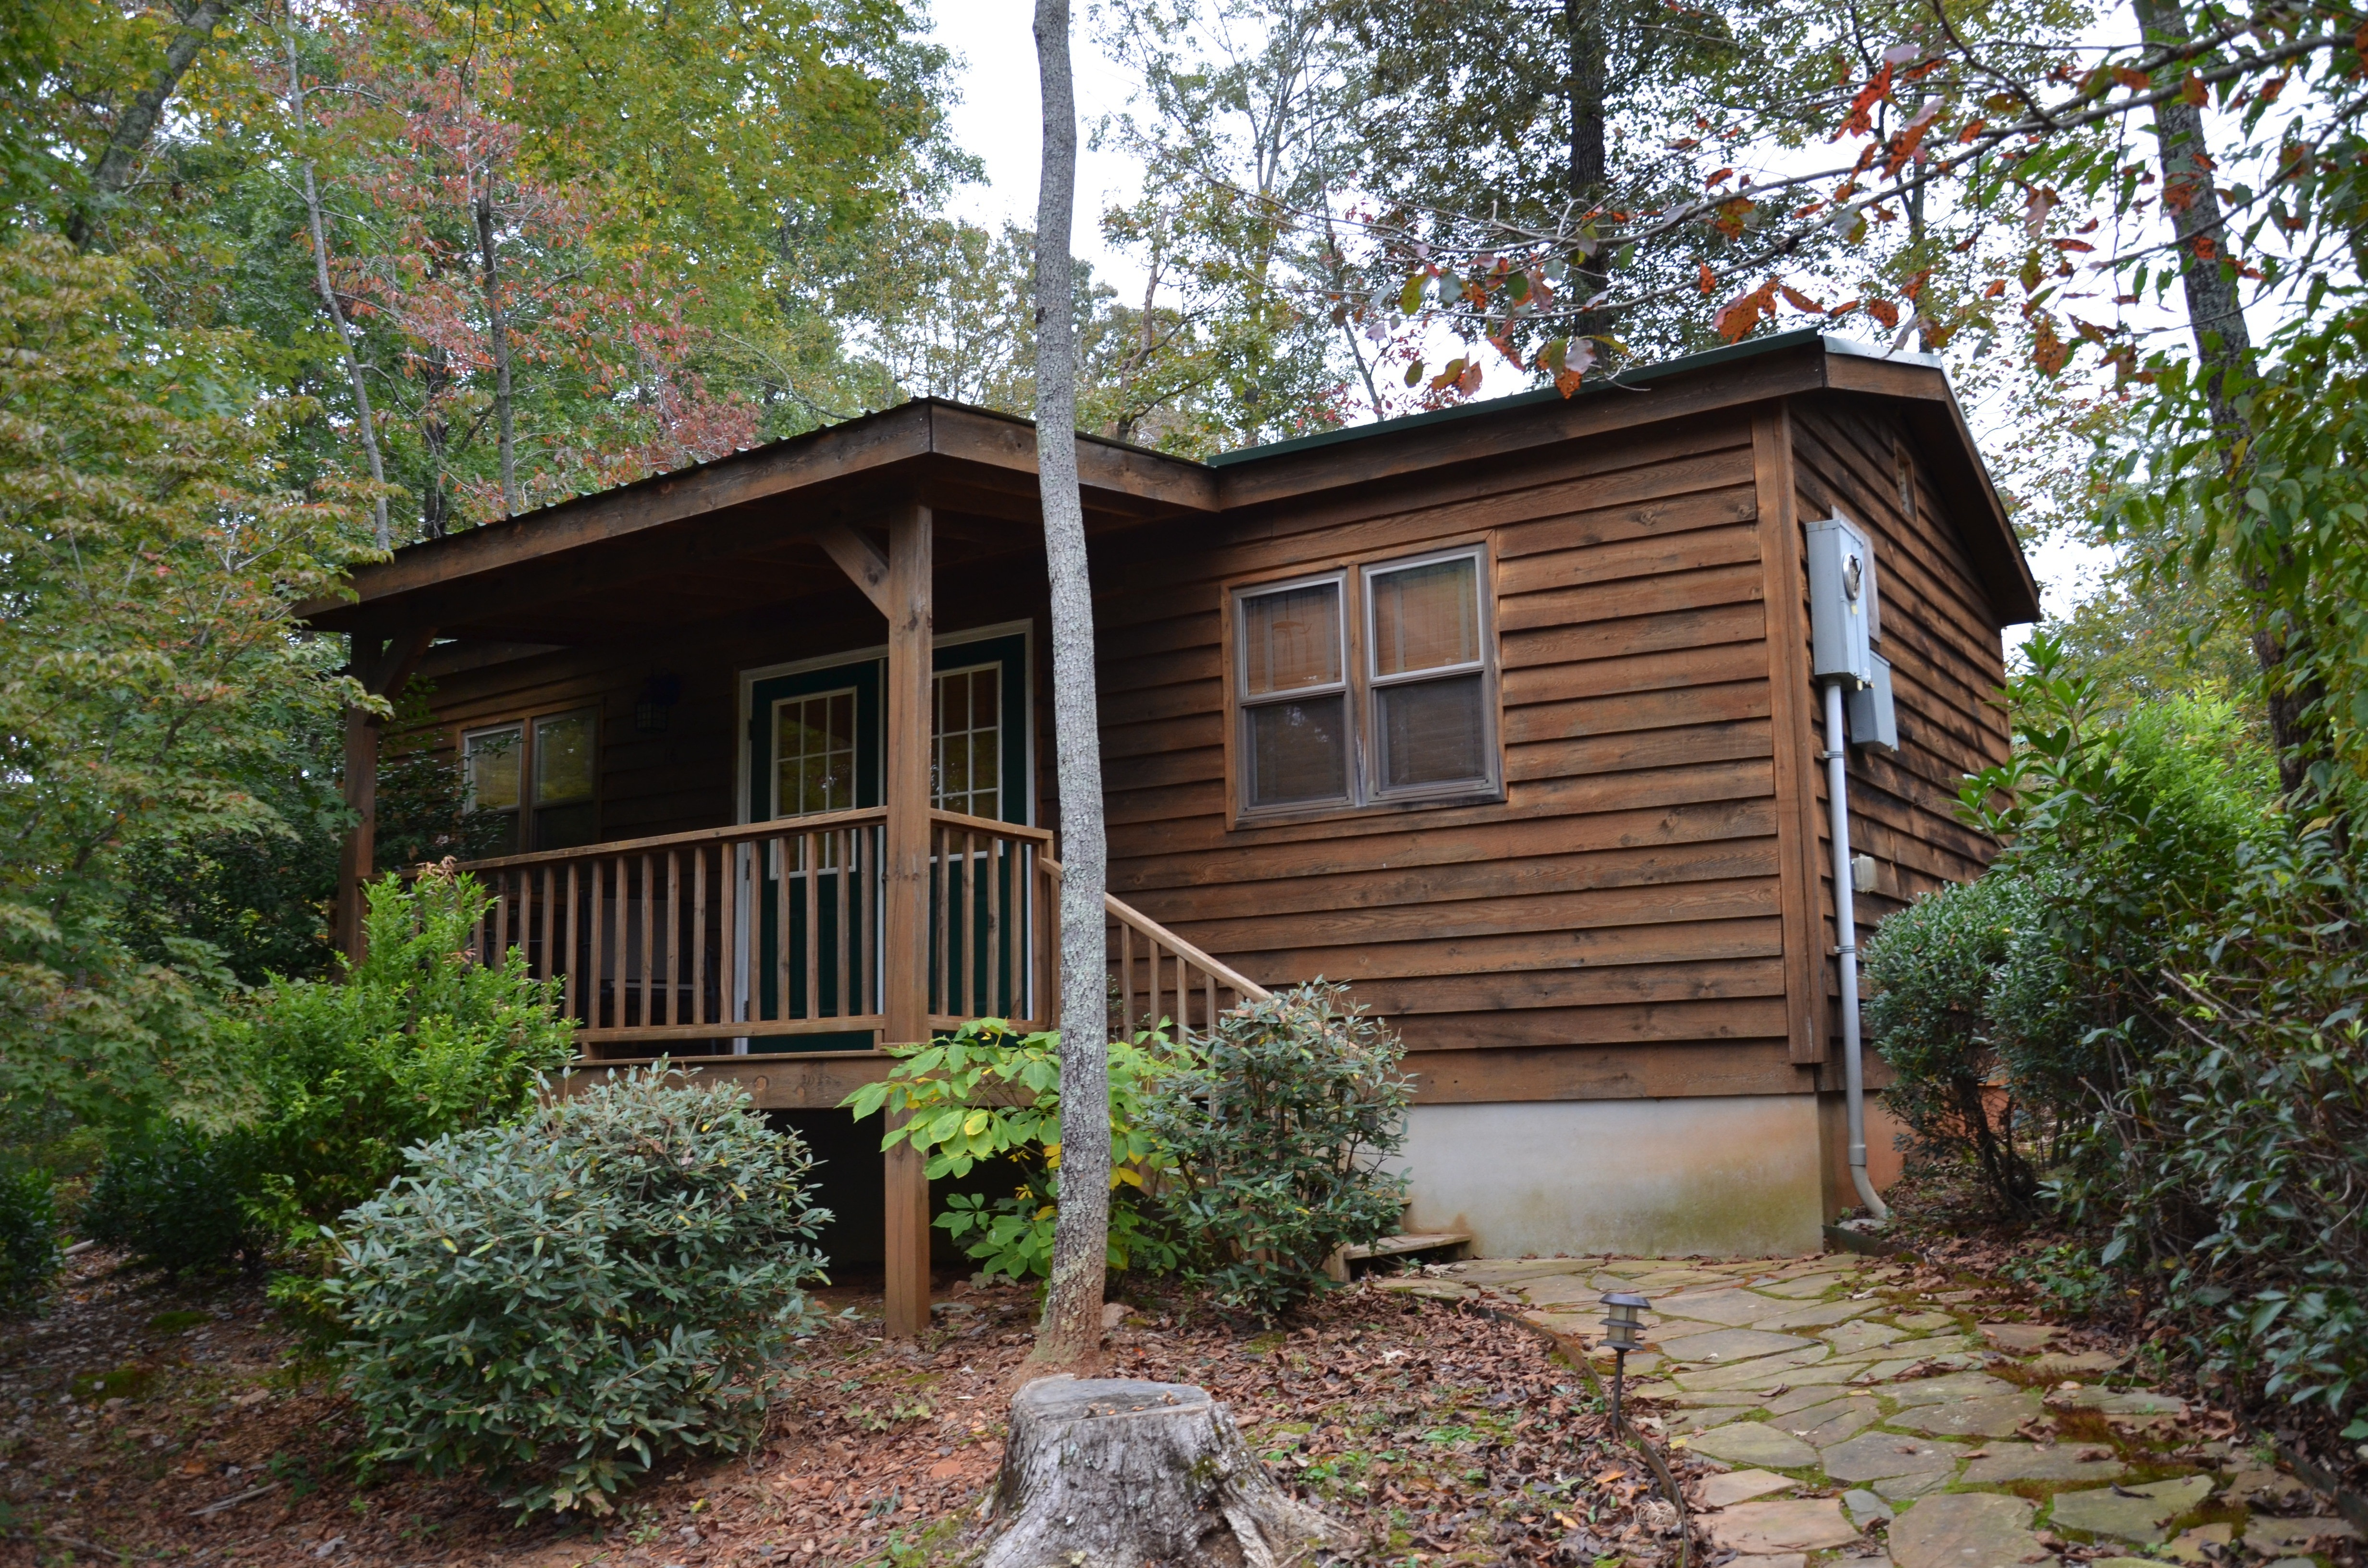 georgia mountain dahlonega anthony ga jack northeast scene pin views cabins summer by in